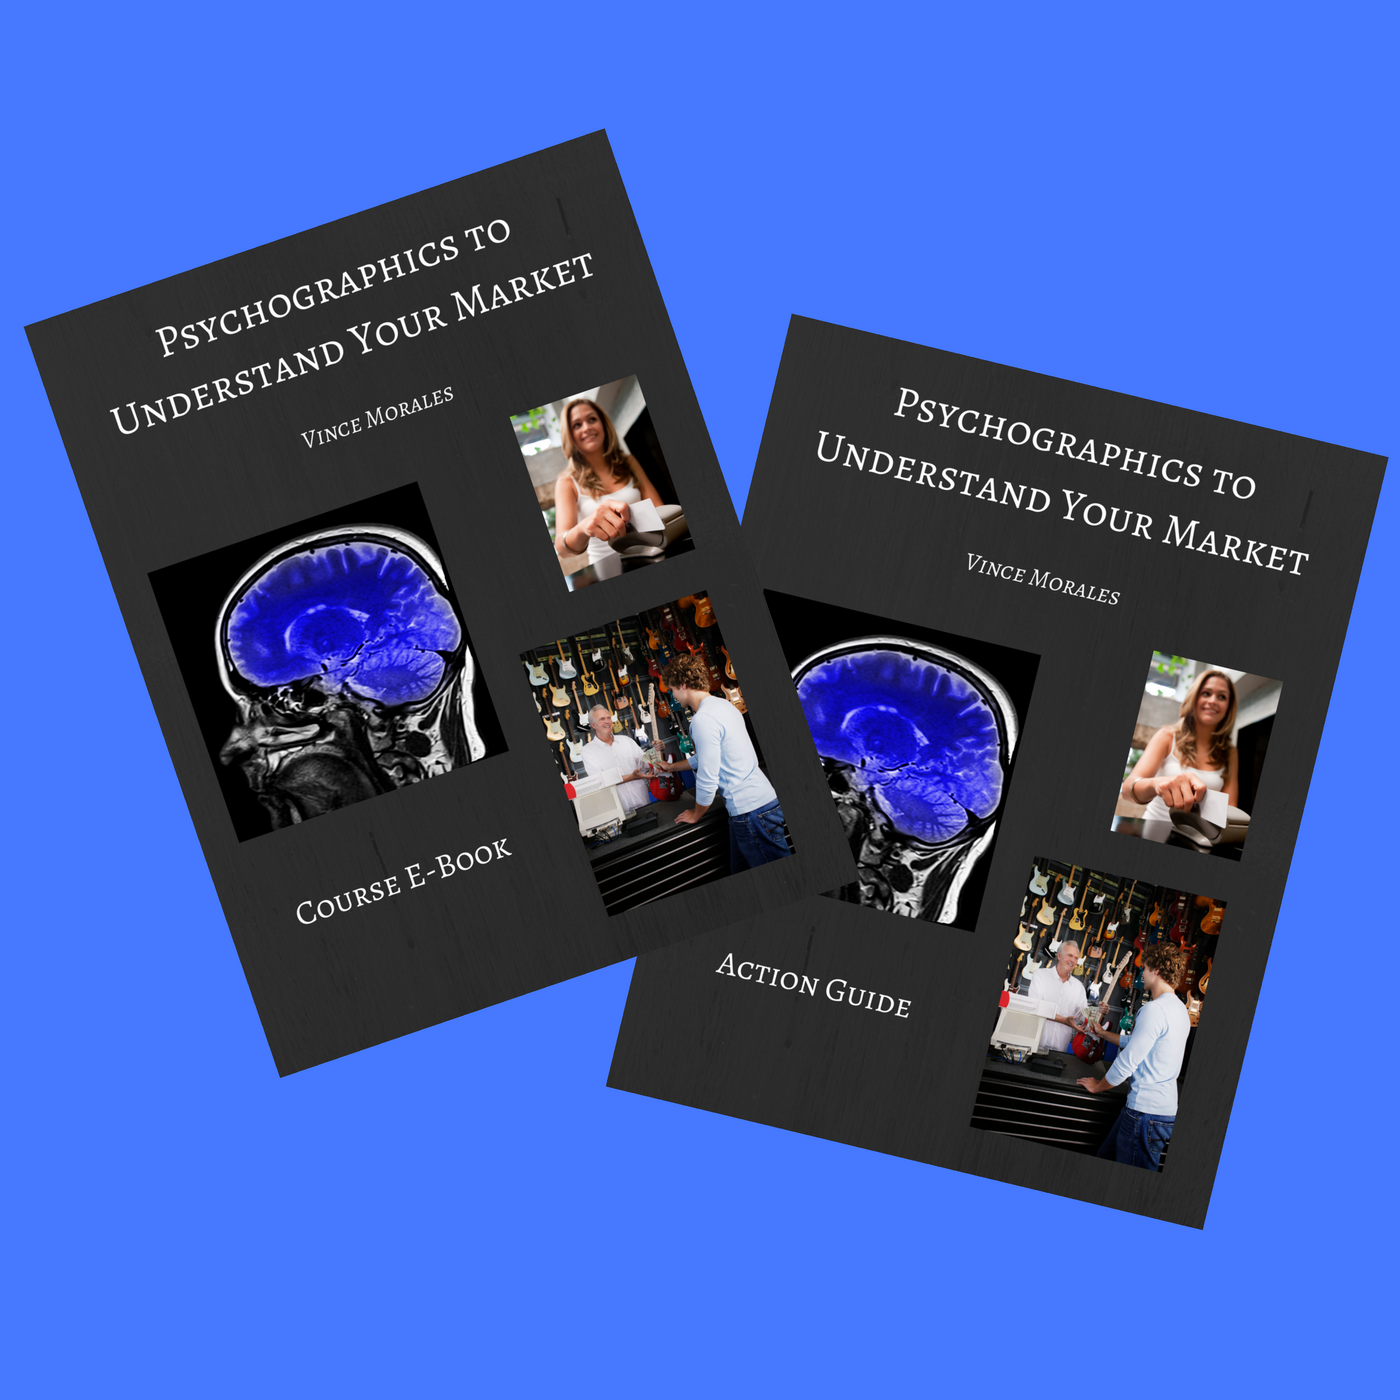 Psychographics to Understand Your Market by Vince Morales